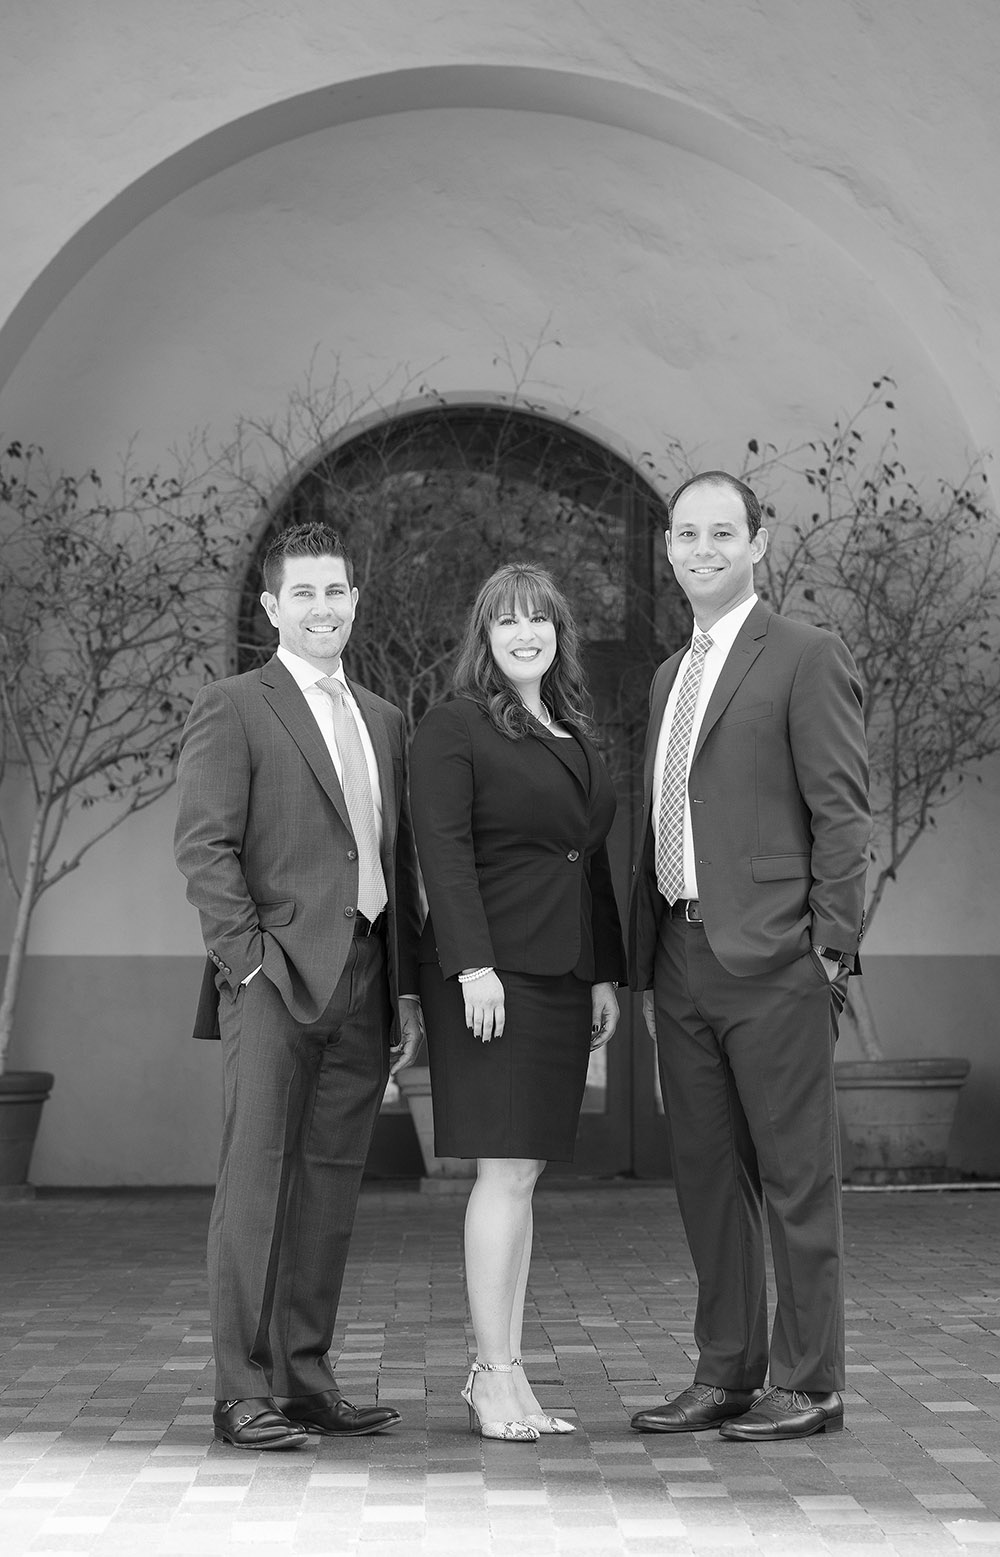 Contact San Diego Law Firm